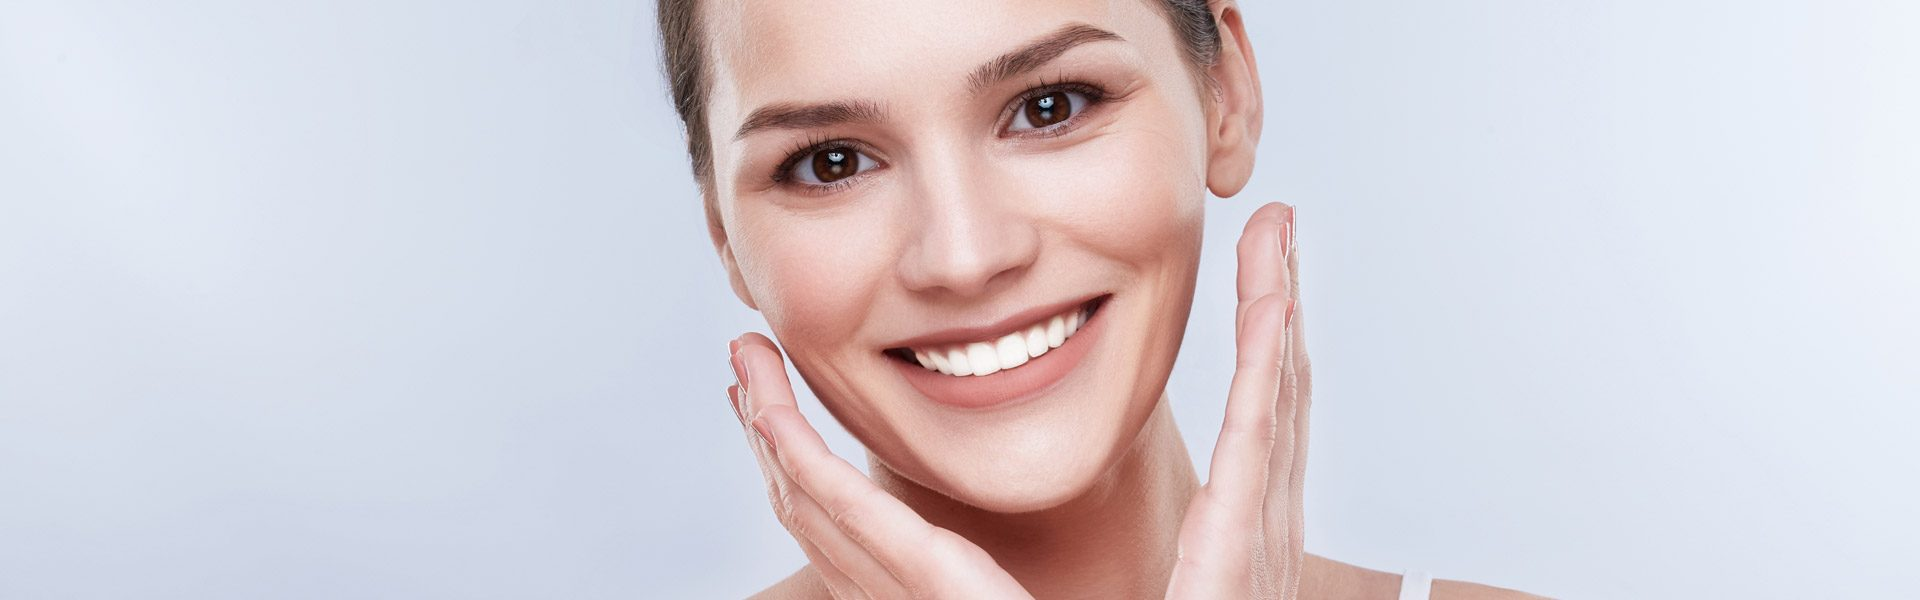 Look More Youthful and Refreshed with Houston Dermal Fillers